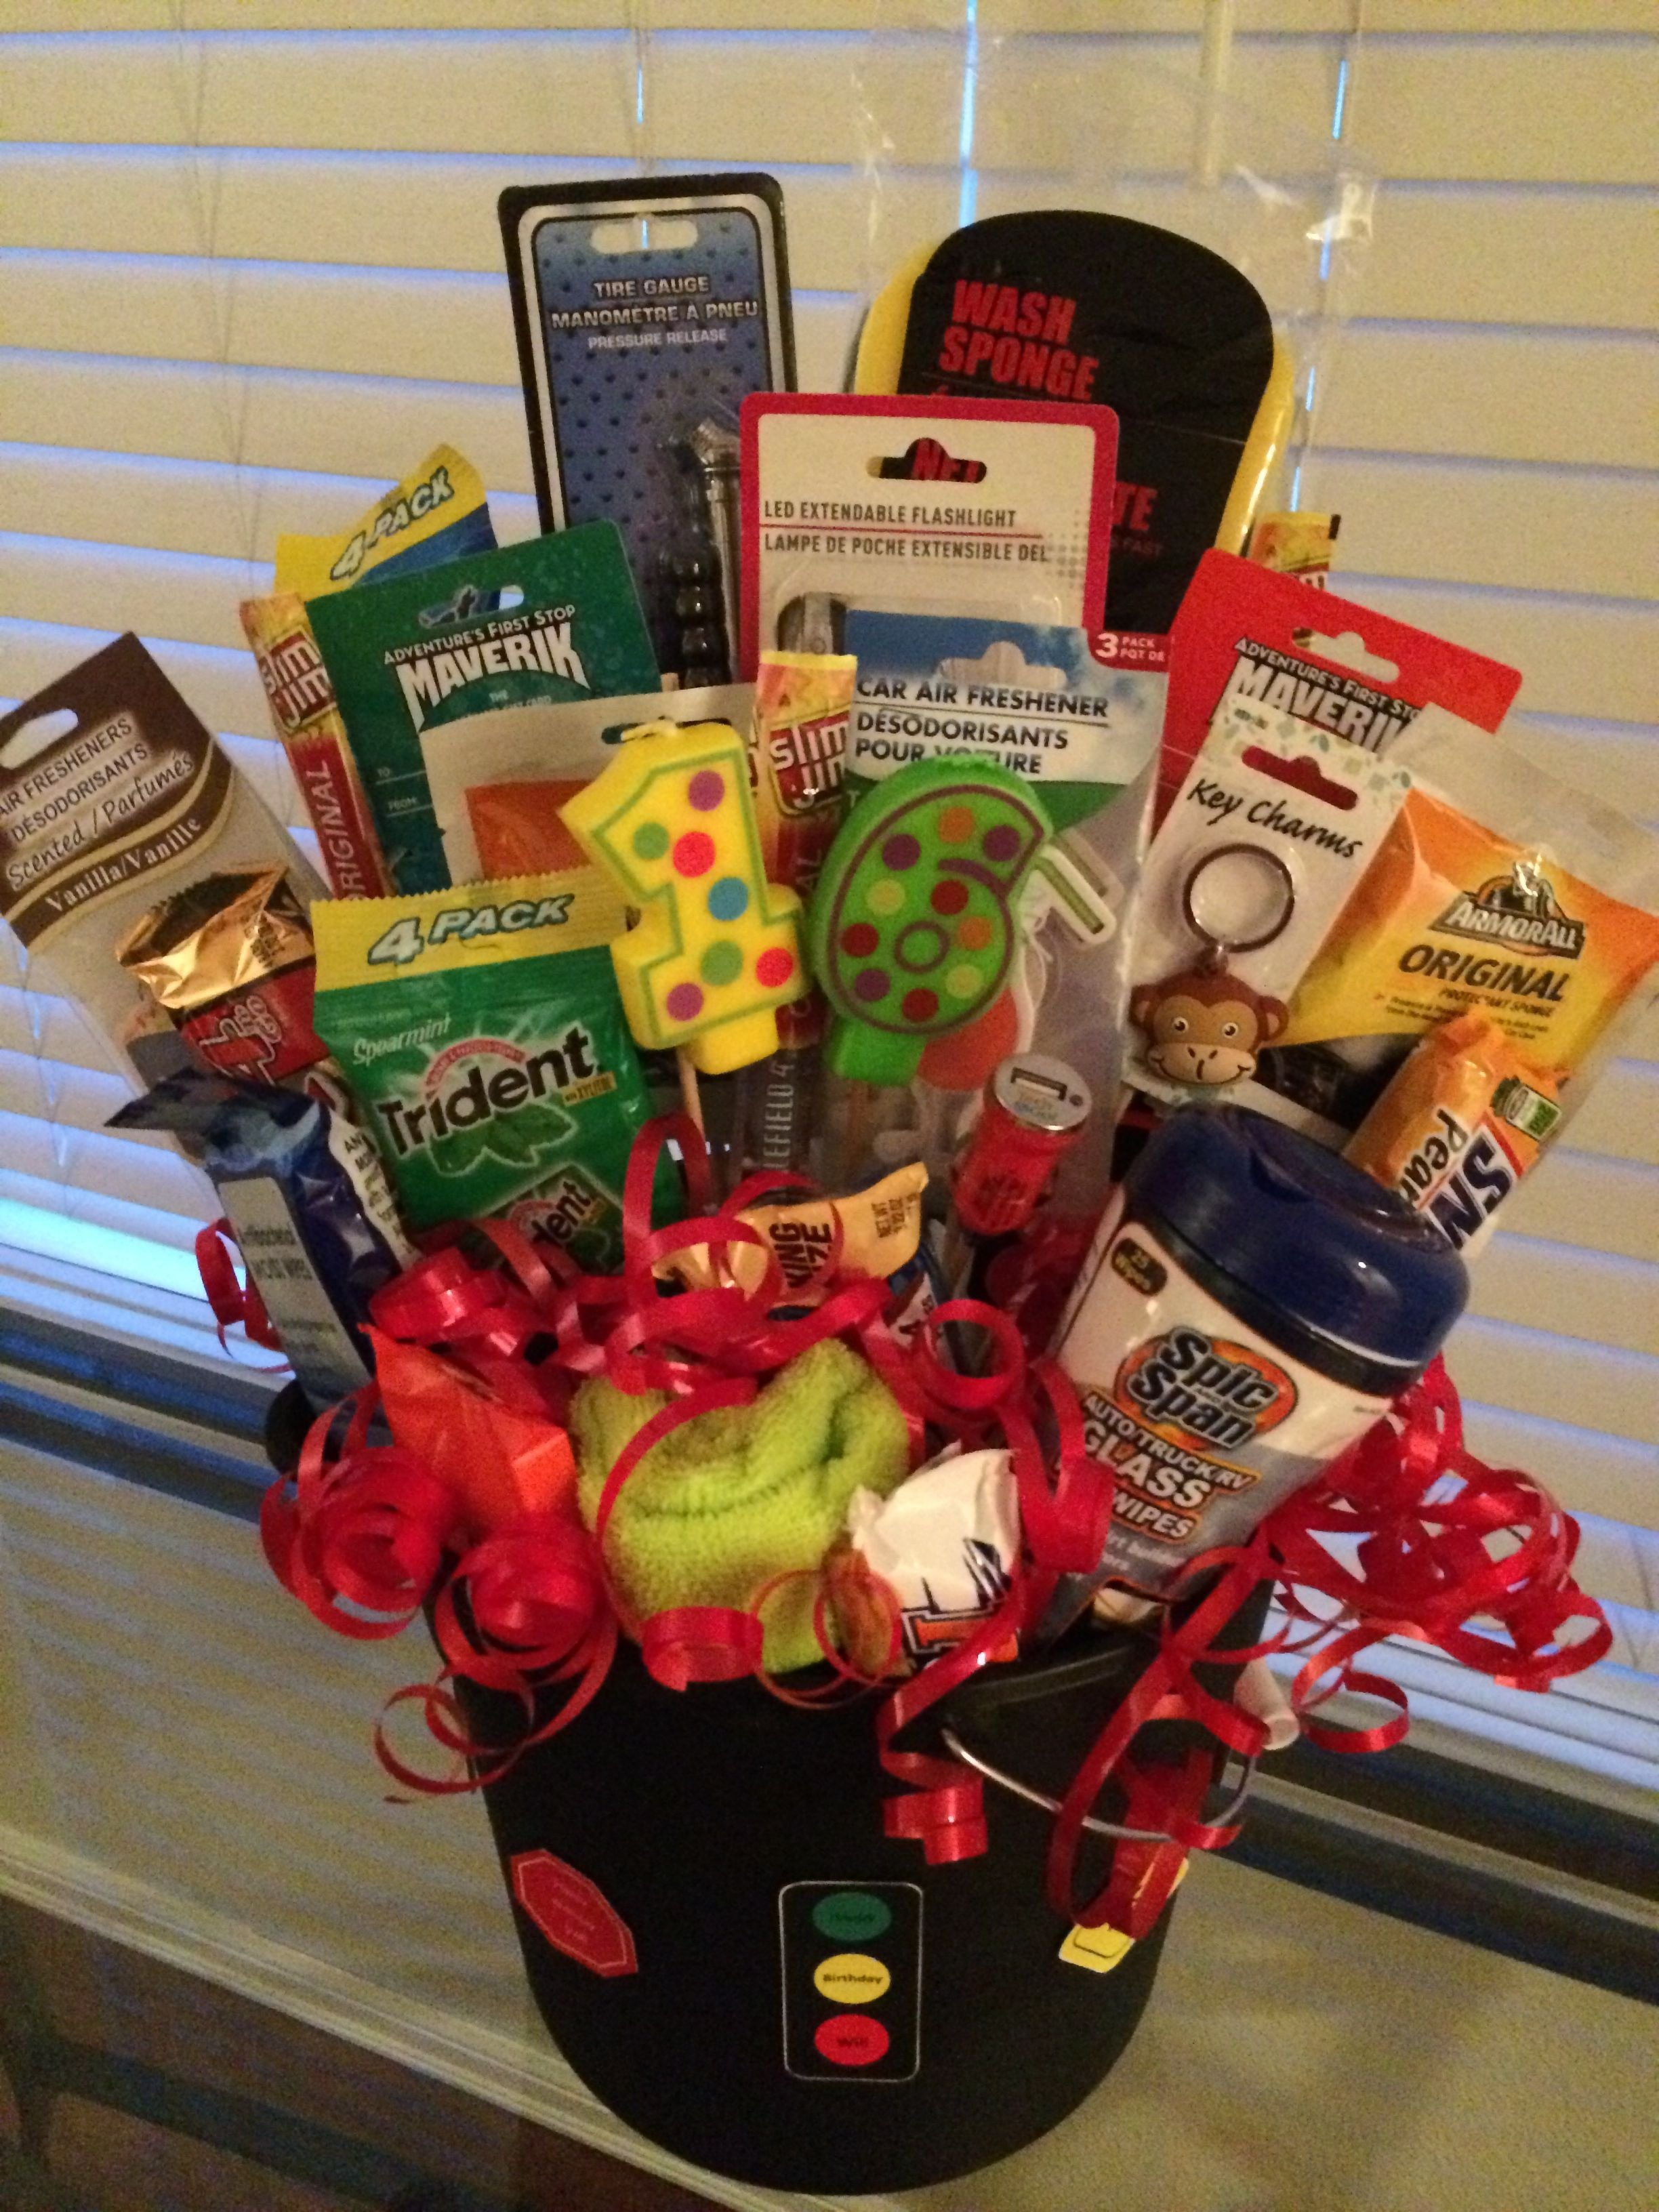 10 Nice Gift Ideas For 16Th Birthday new driver bouquet diy and crafts pinterest gift sweet 16 and 4